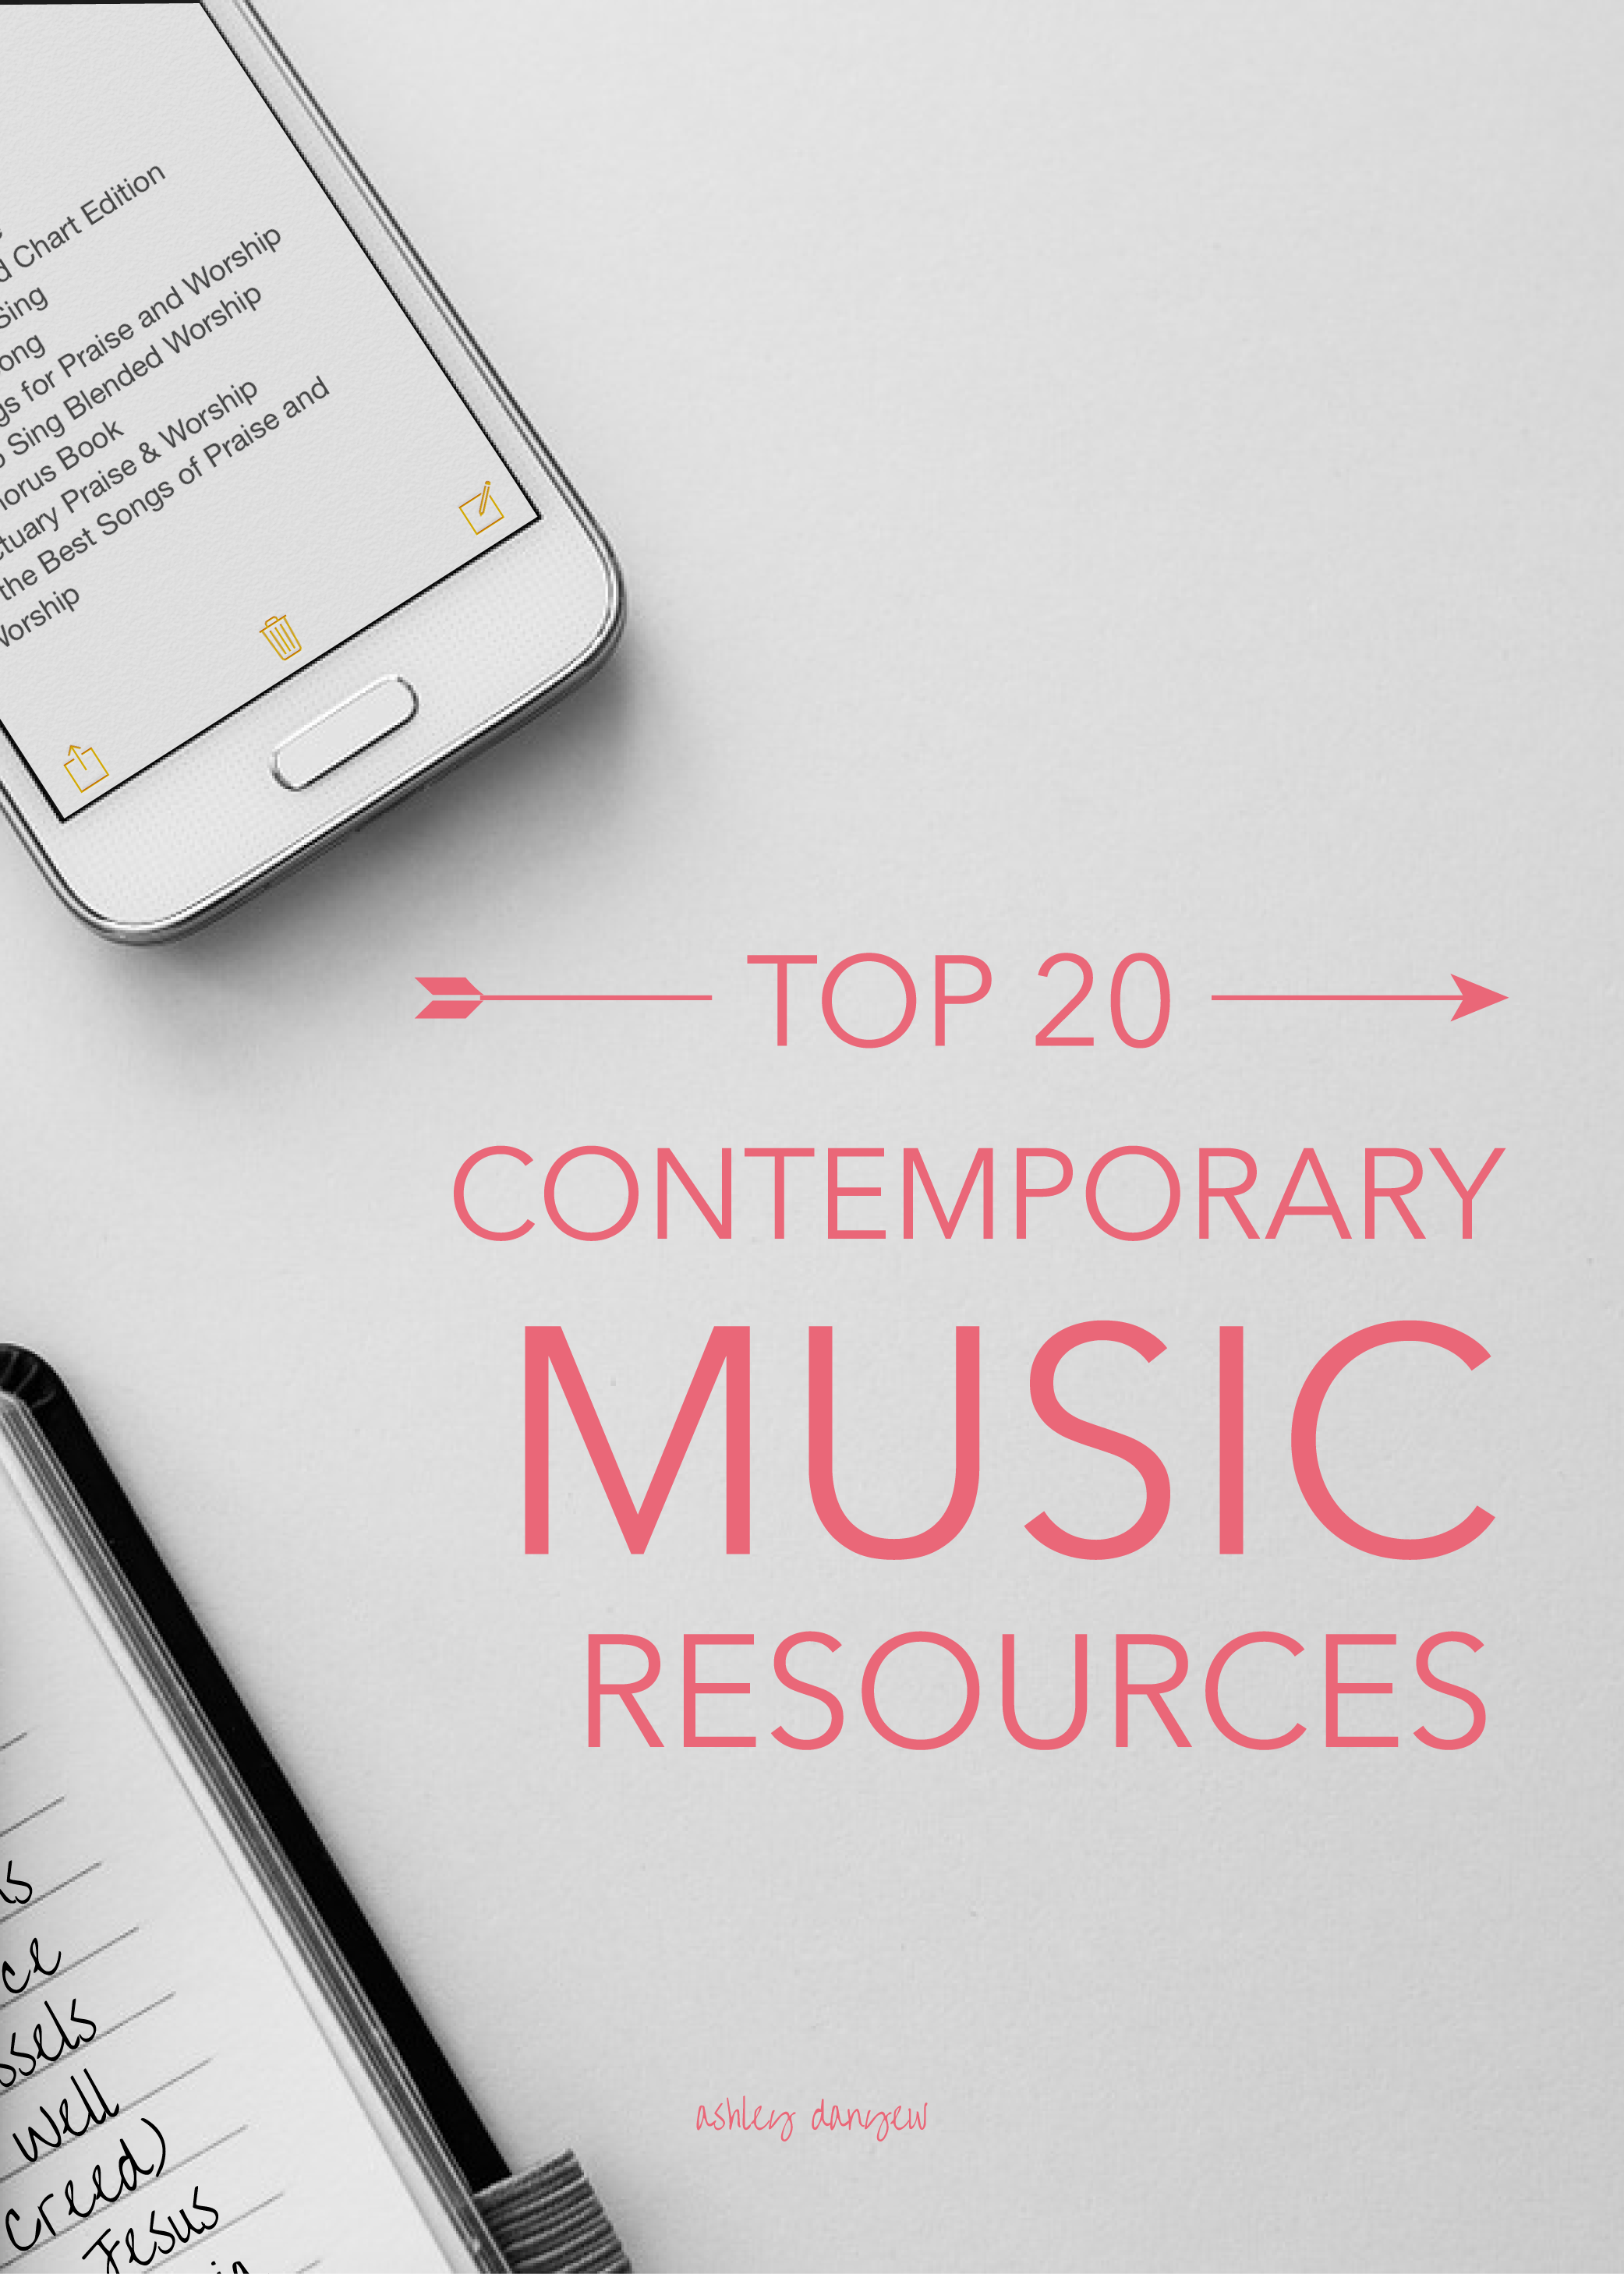 Copy of Top 20 Contemporary Music Resources